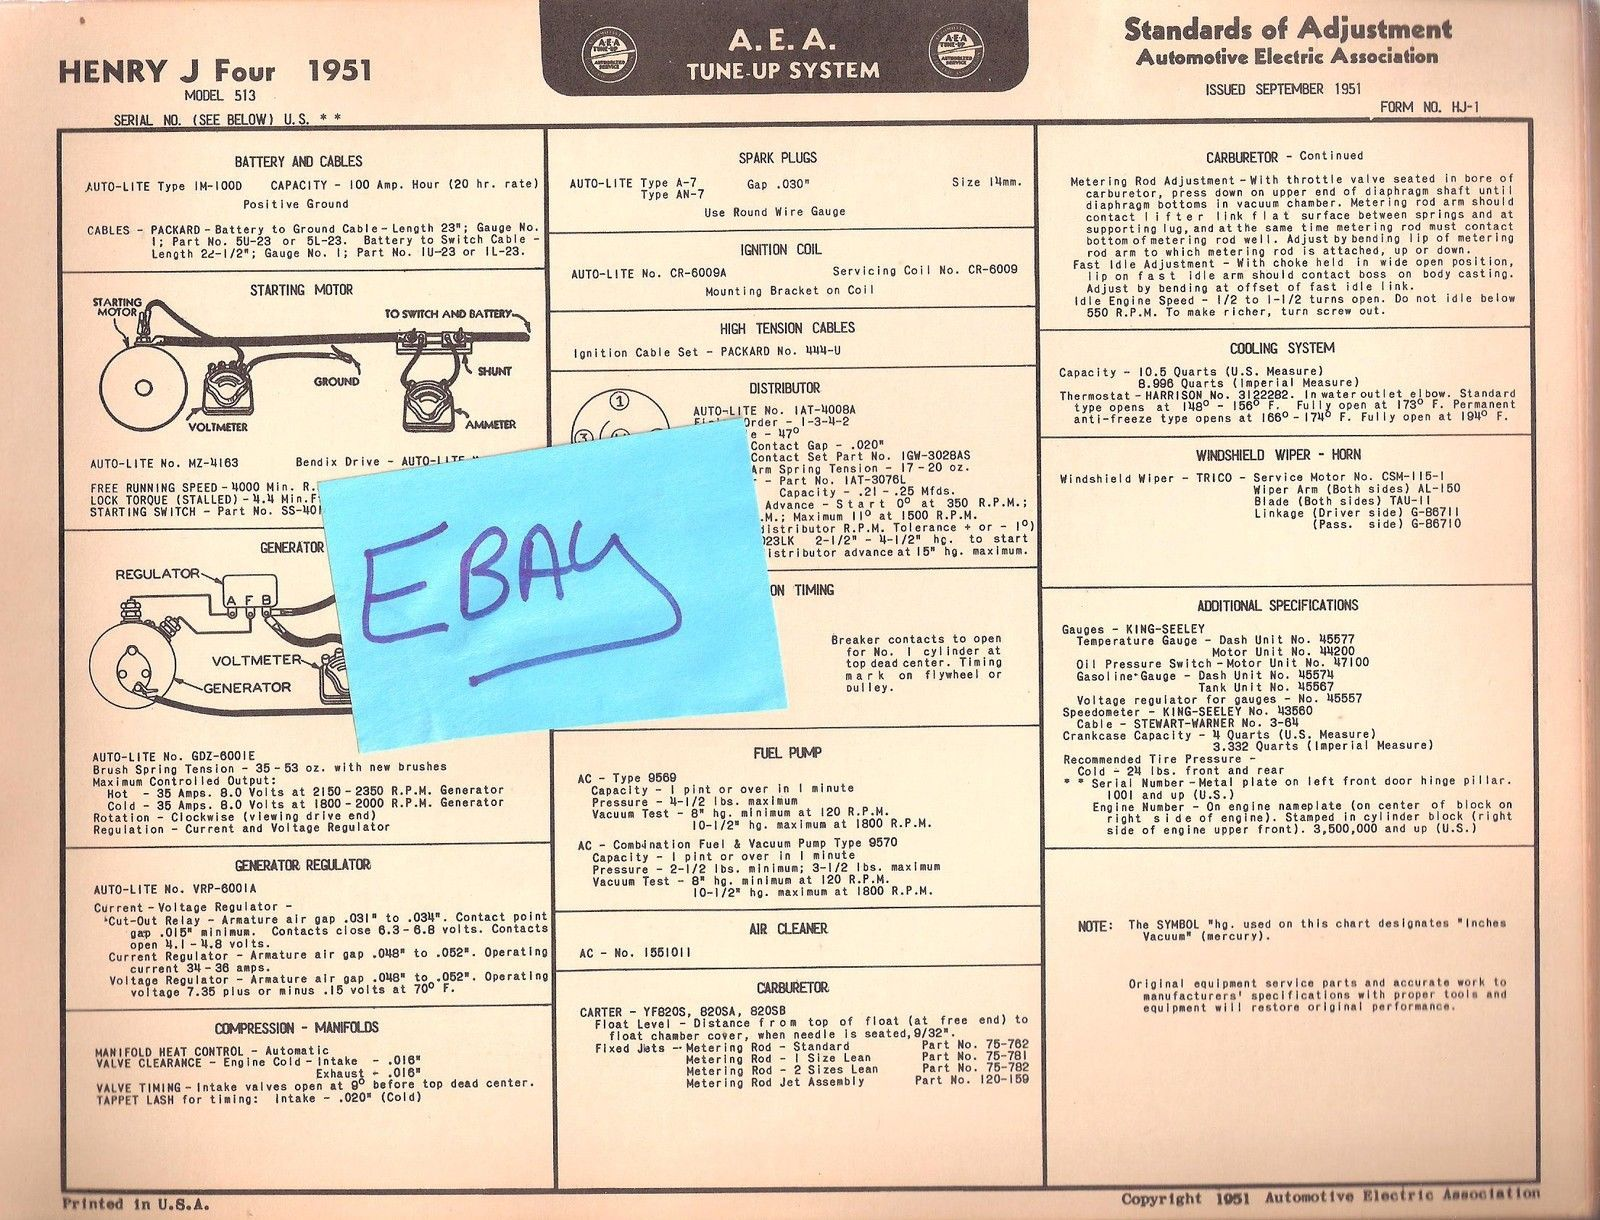 1951 aea henry j four tuneup chart wiring and 50 similar items rh bonanza com Light Switch Wiring Diagram Residential Electrical Wiring Diagrams